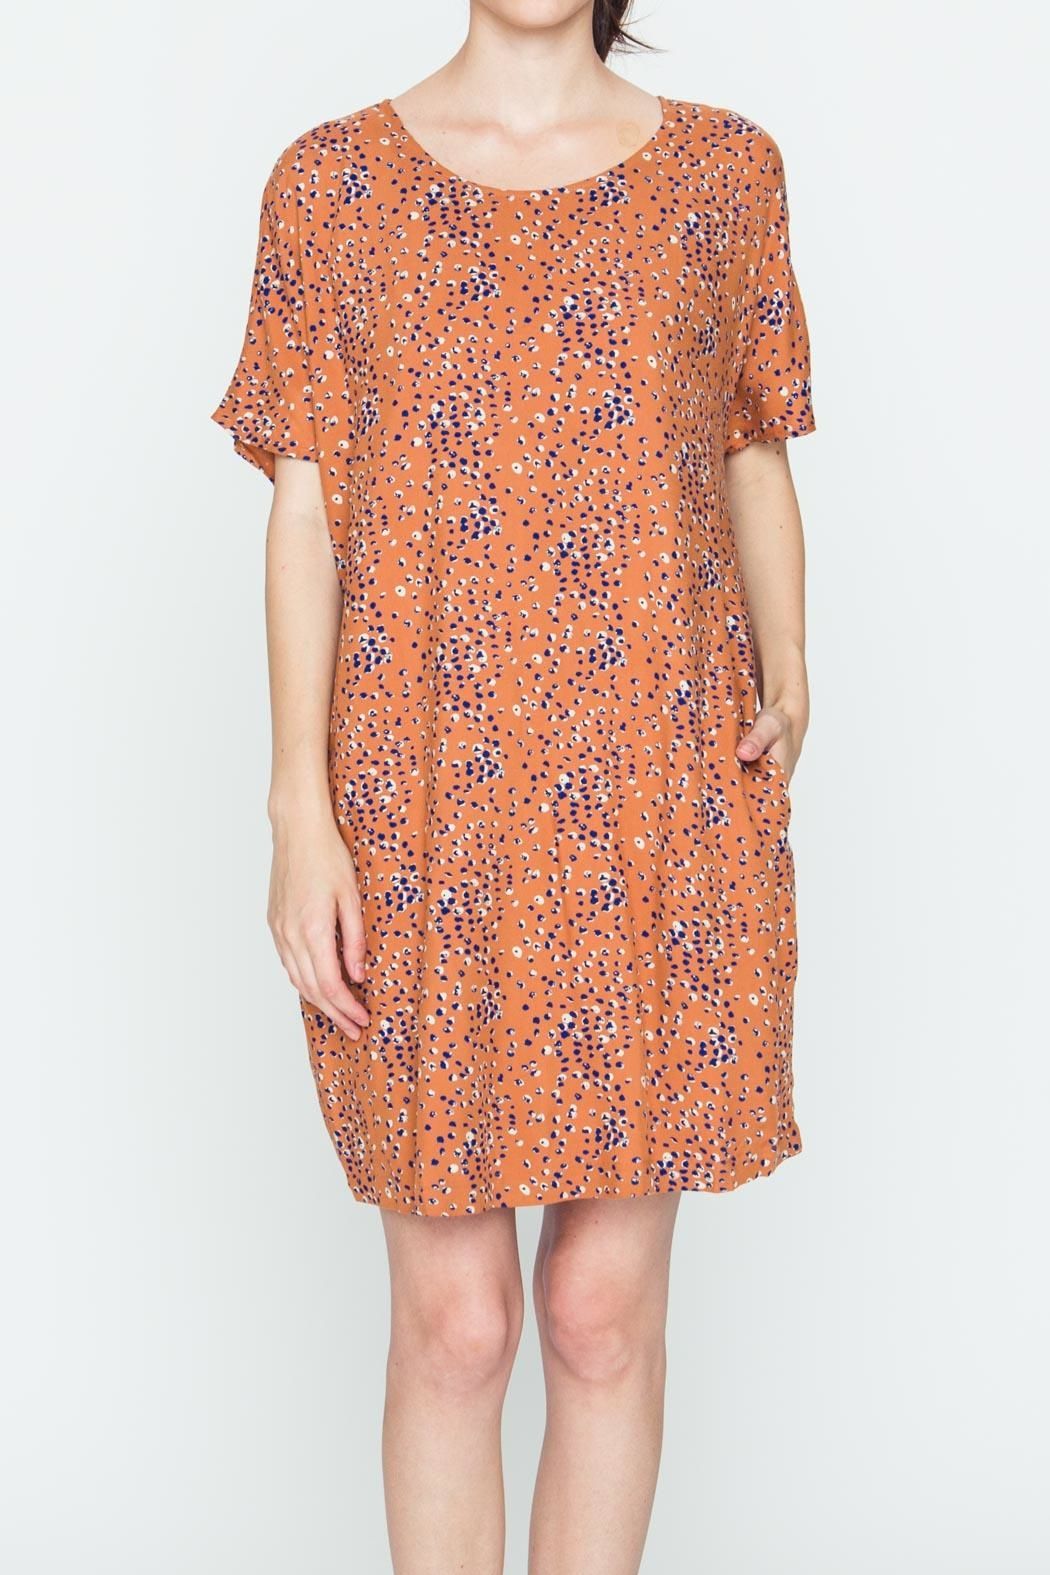 Movint Alliume Swing Dress - Main Image